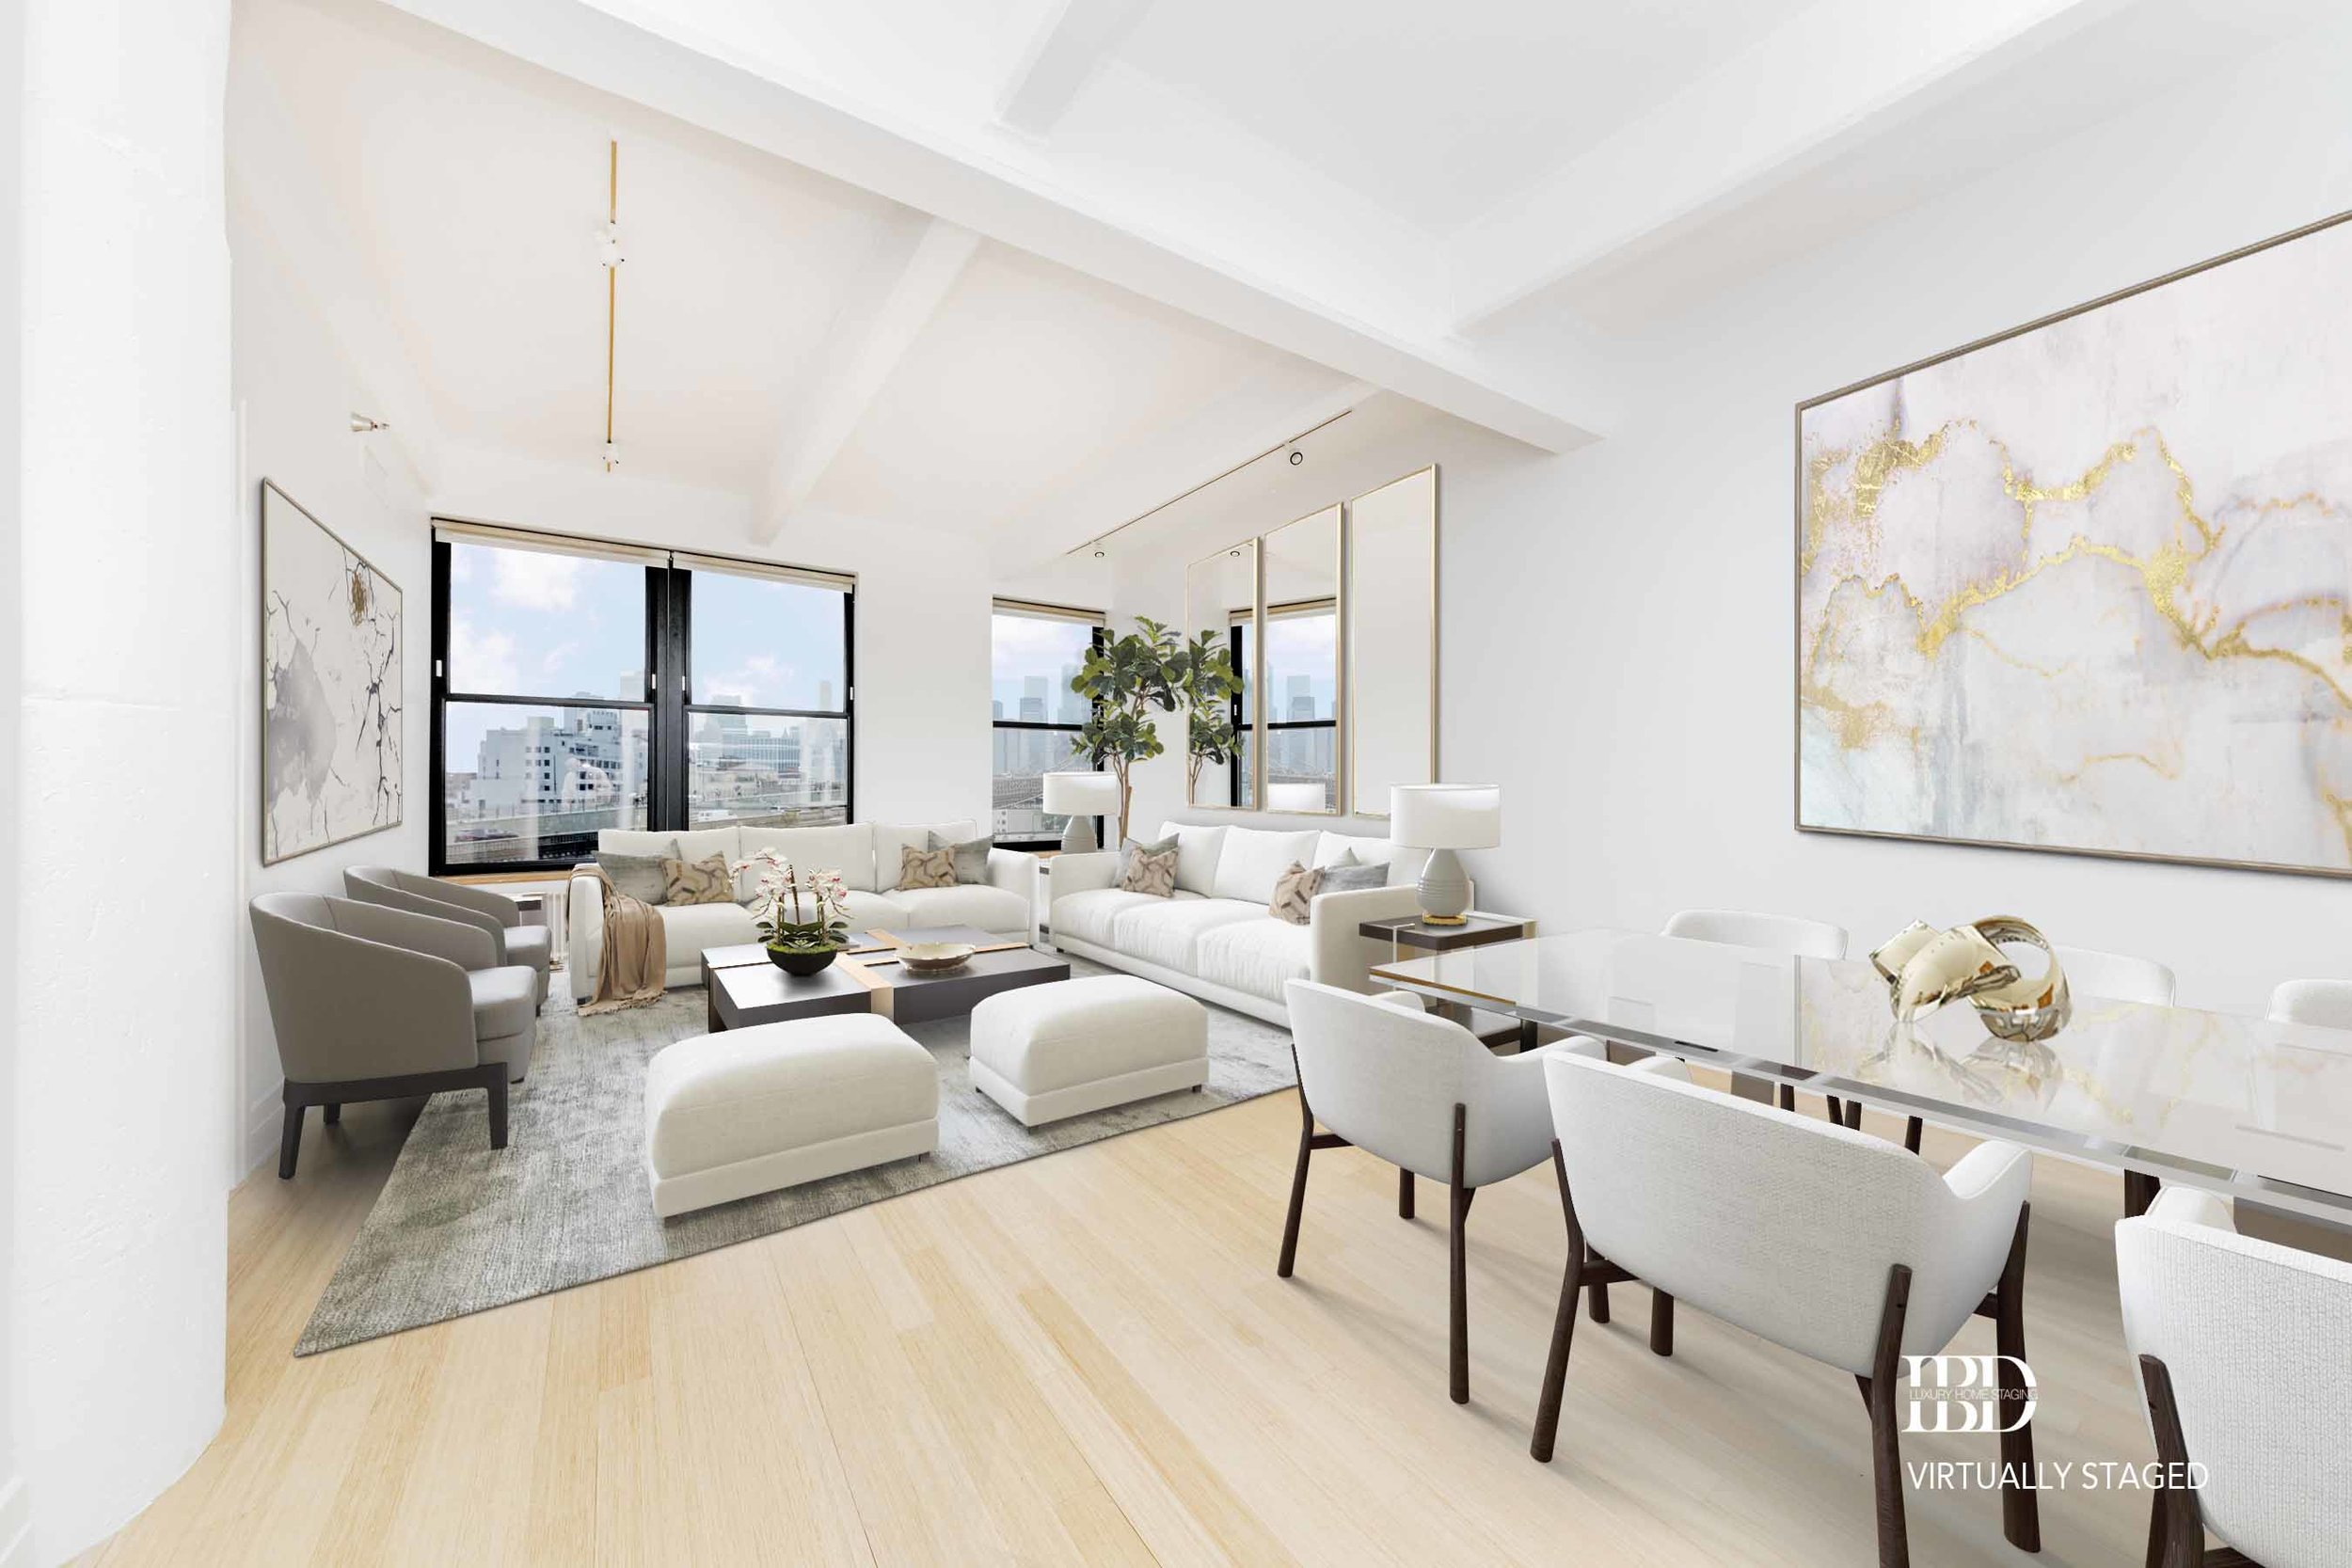 IN CONTRACT IN 3 WEEKS - NEW YORK CITY, NY